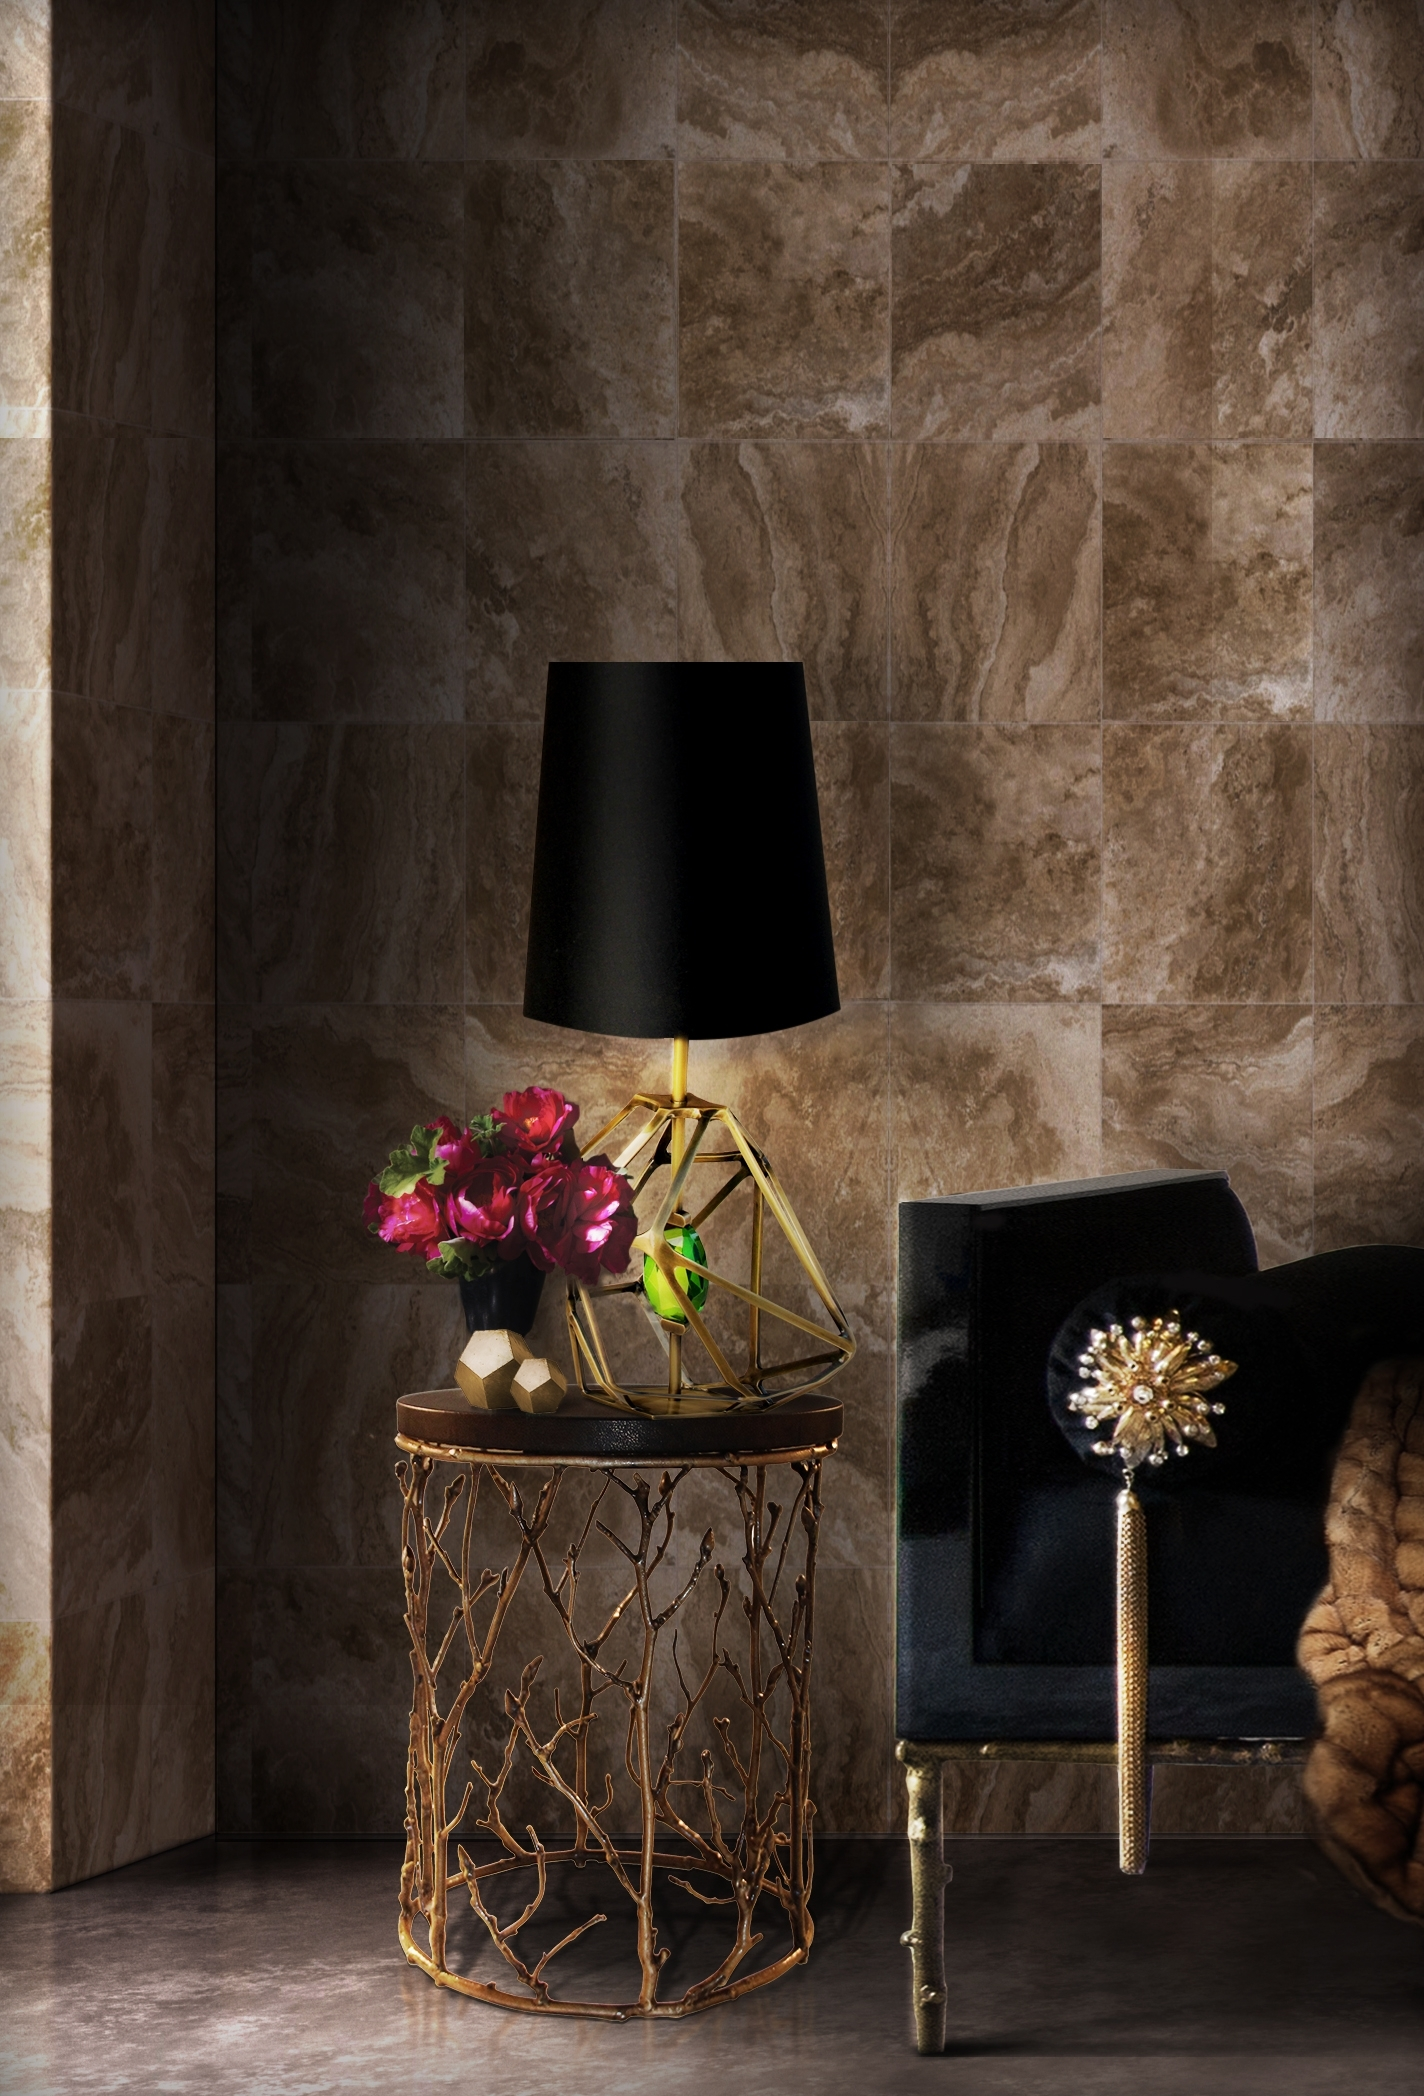 How To Decorate Your Living Room With Floor And Table Lamps In Table Lamps For The Living Room (View 15 of 15)